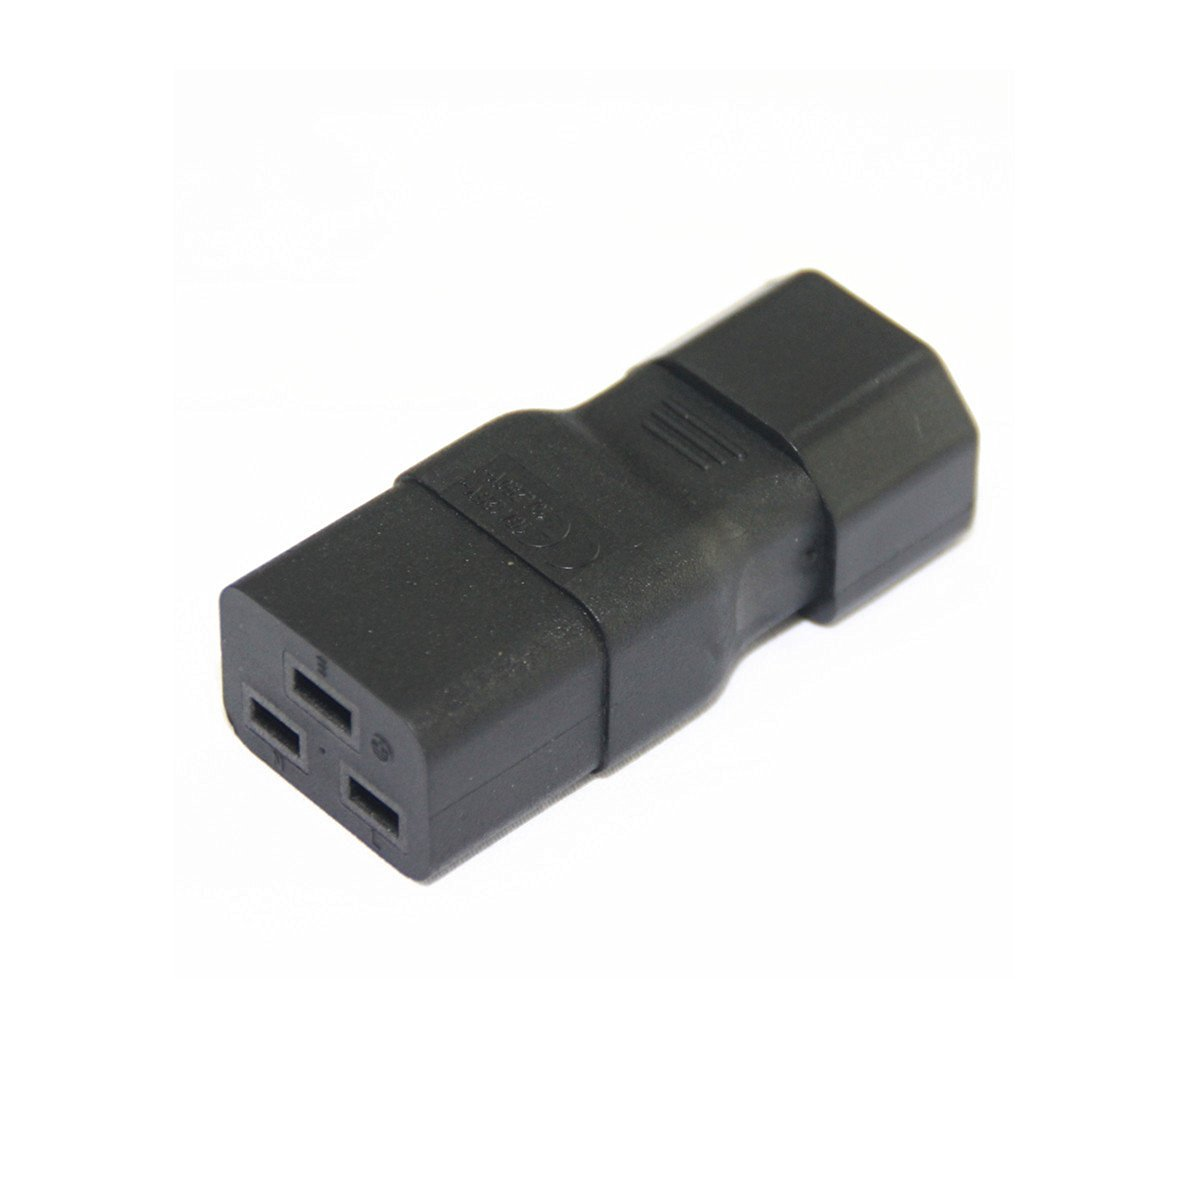 Dshot IEC 320 C14 Male to Female C19 Adapter IEC C19 to C14 PDU PSU UPS Power Connector